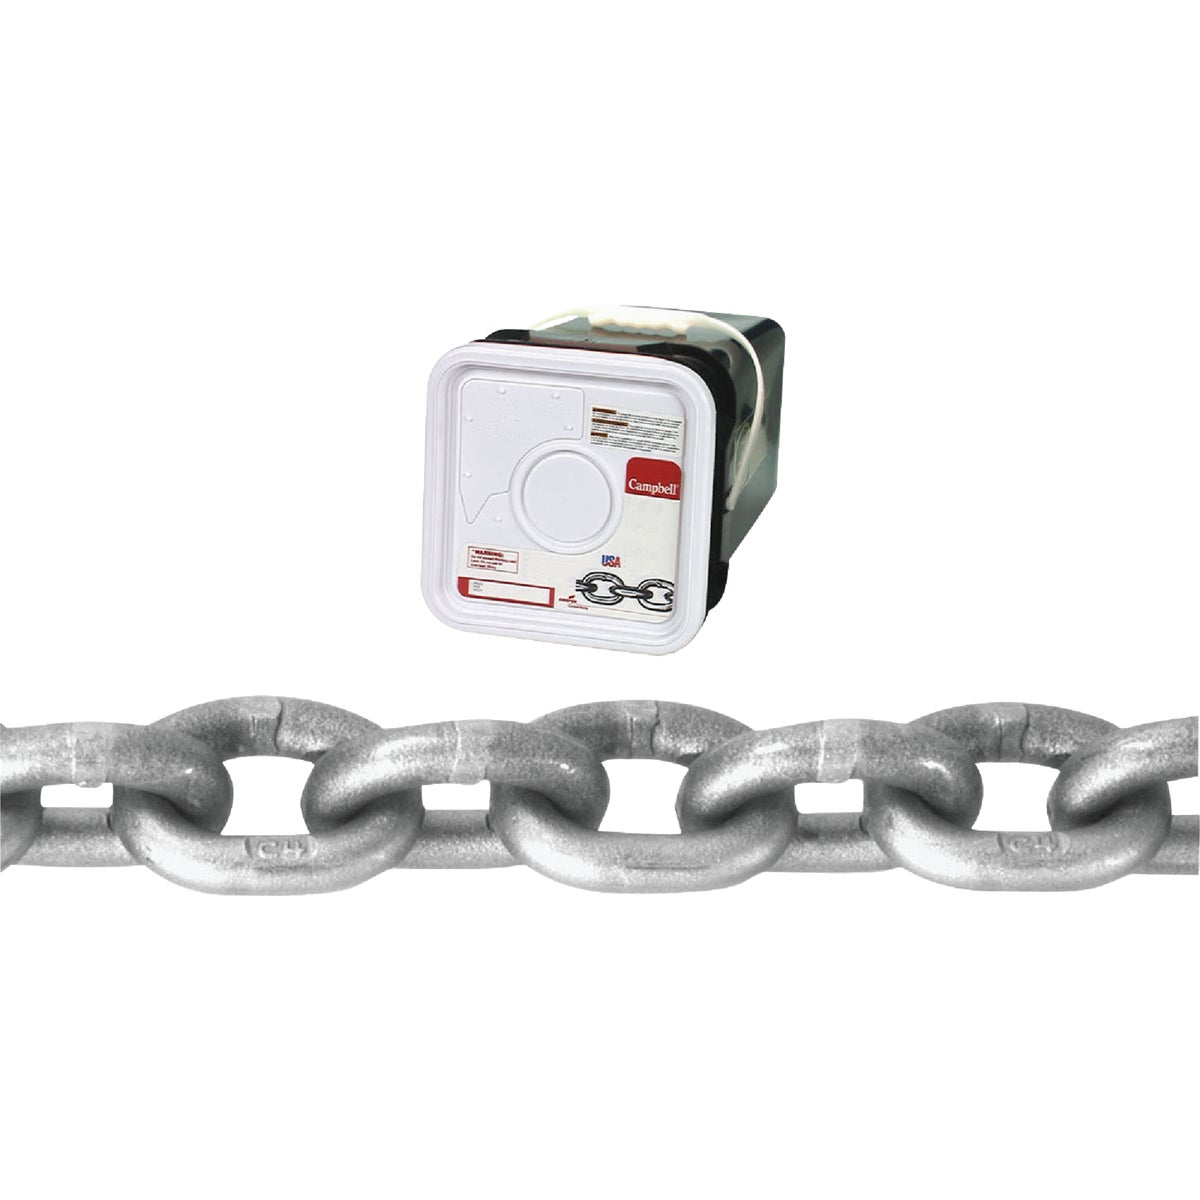 "40' 3/8"" G43 CHAIN - 0184616 by Cooper Campbell Apex"